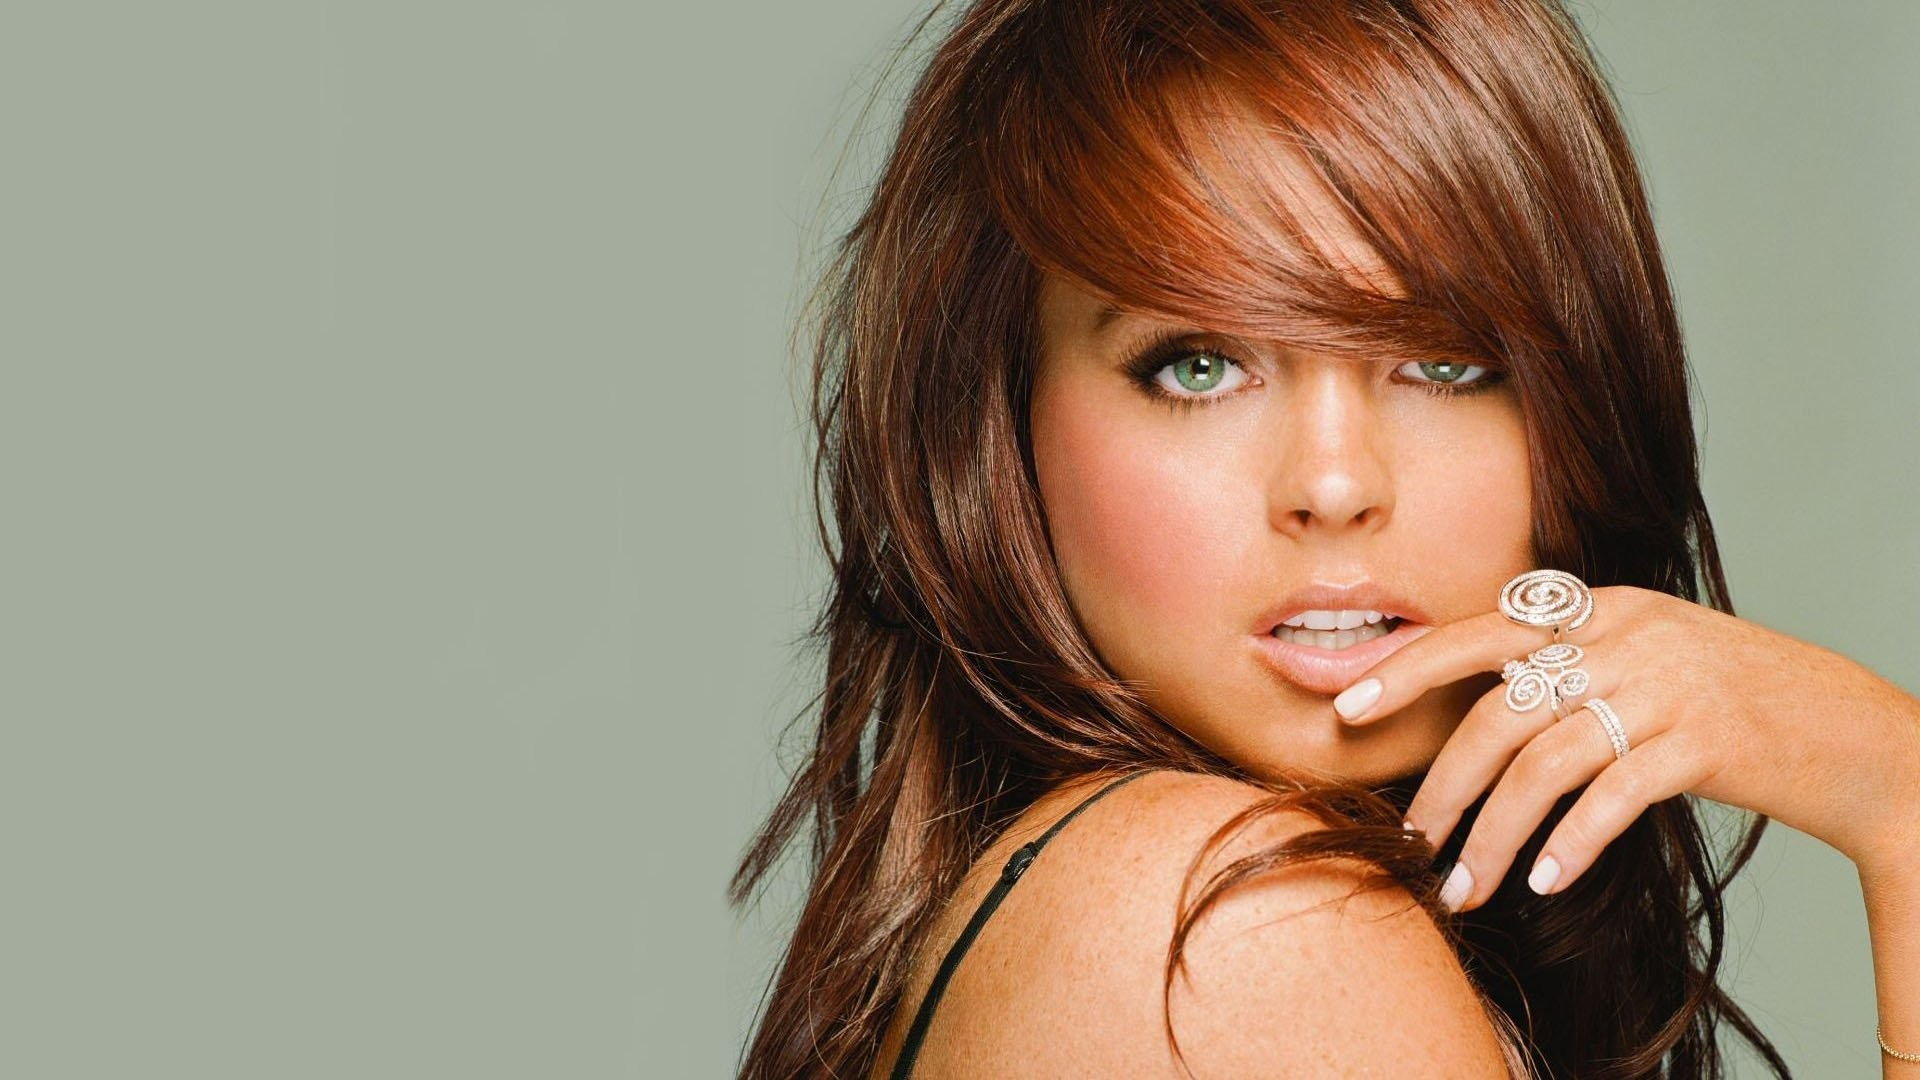 Catch Short Hair Extensions UK and Feel Glamorous and Stylist